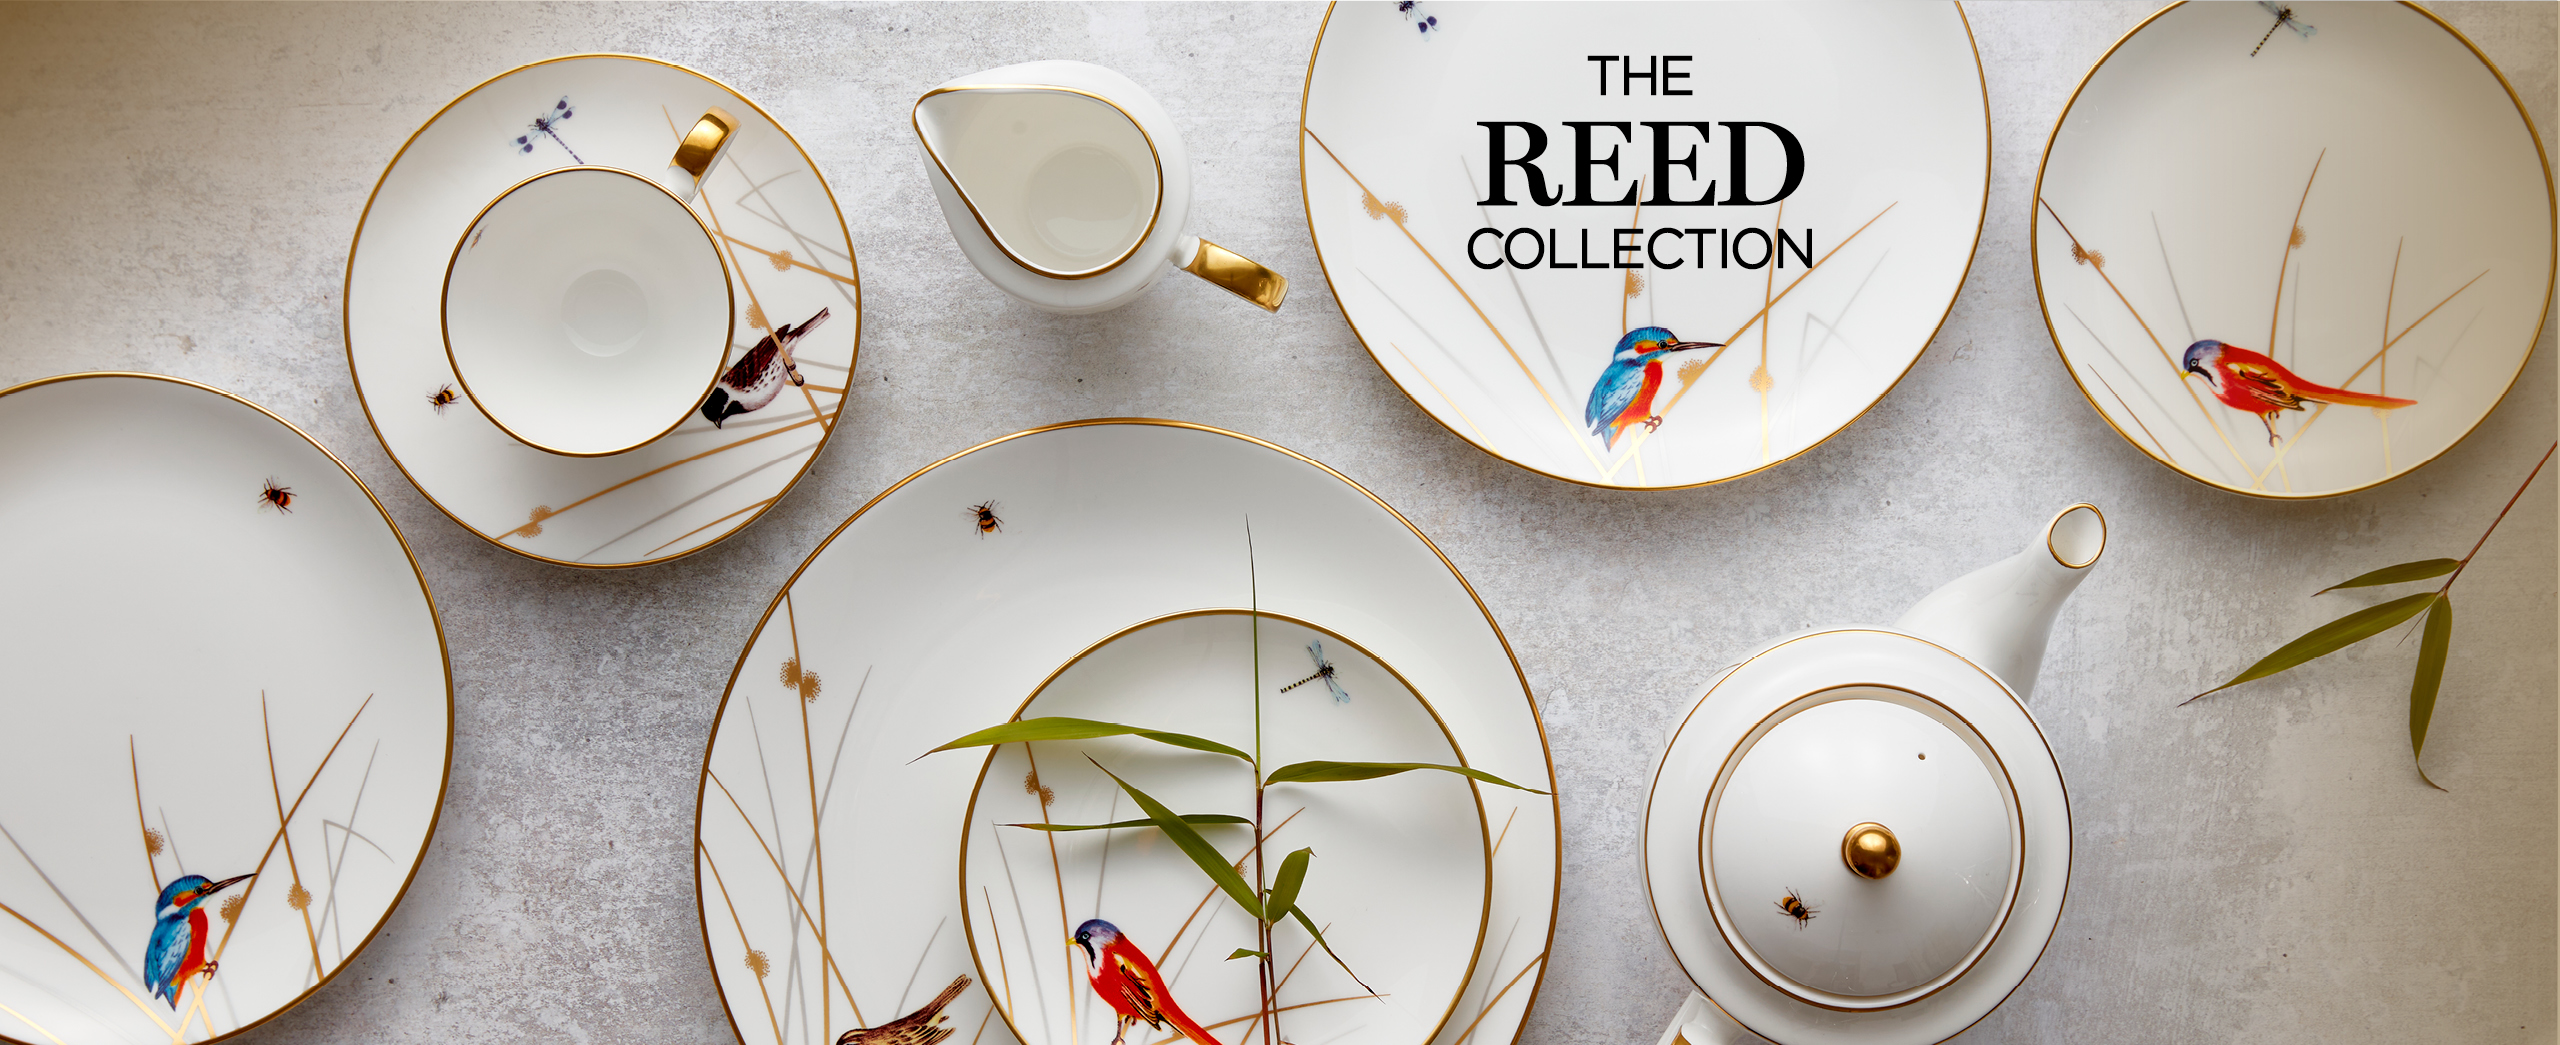 selection of Reed bone china plates with a cup